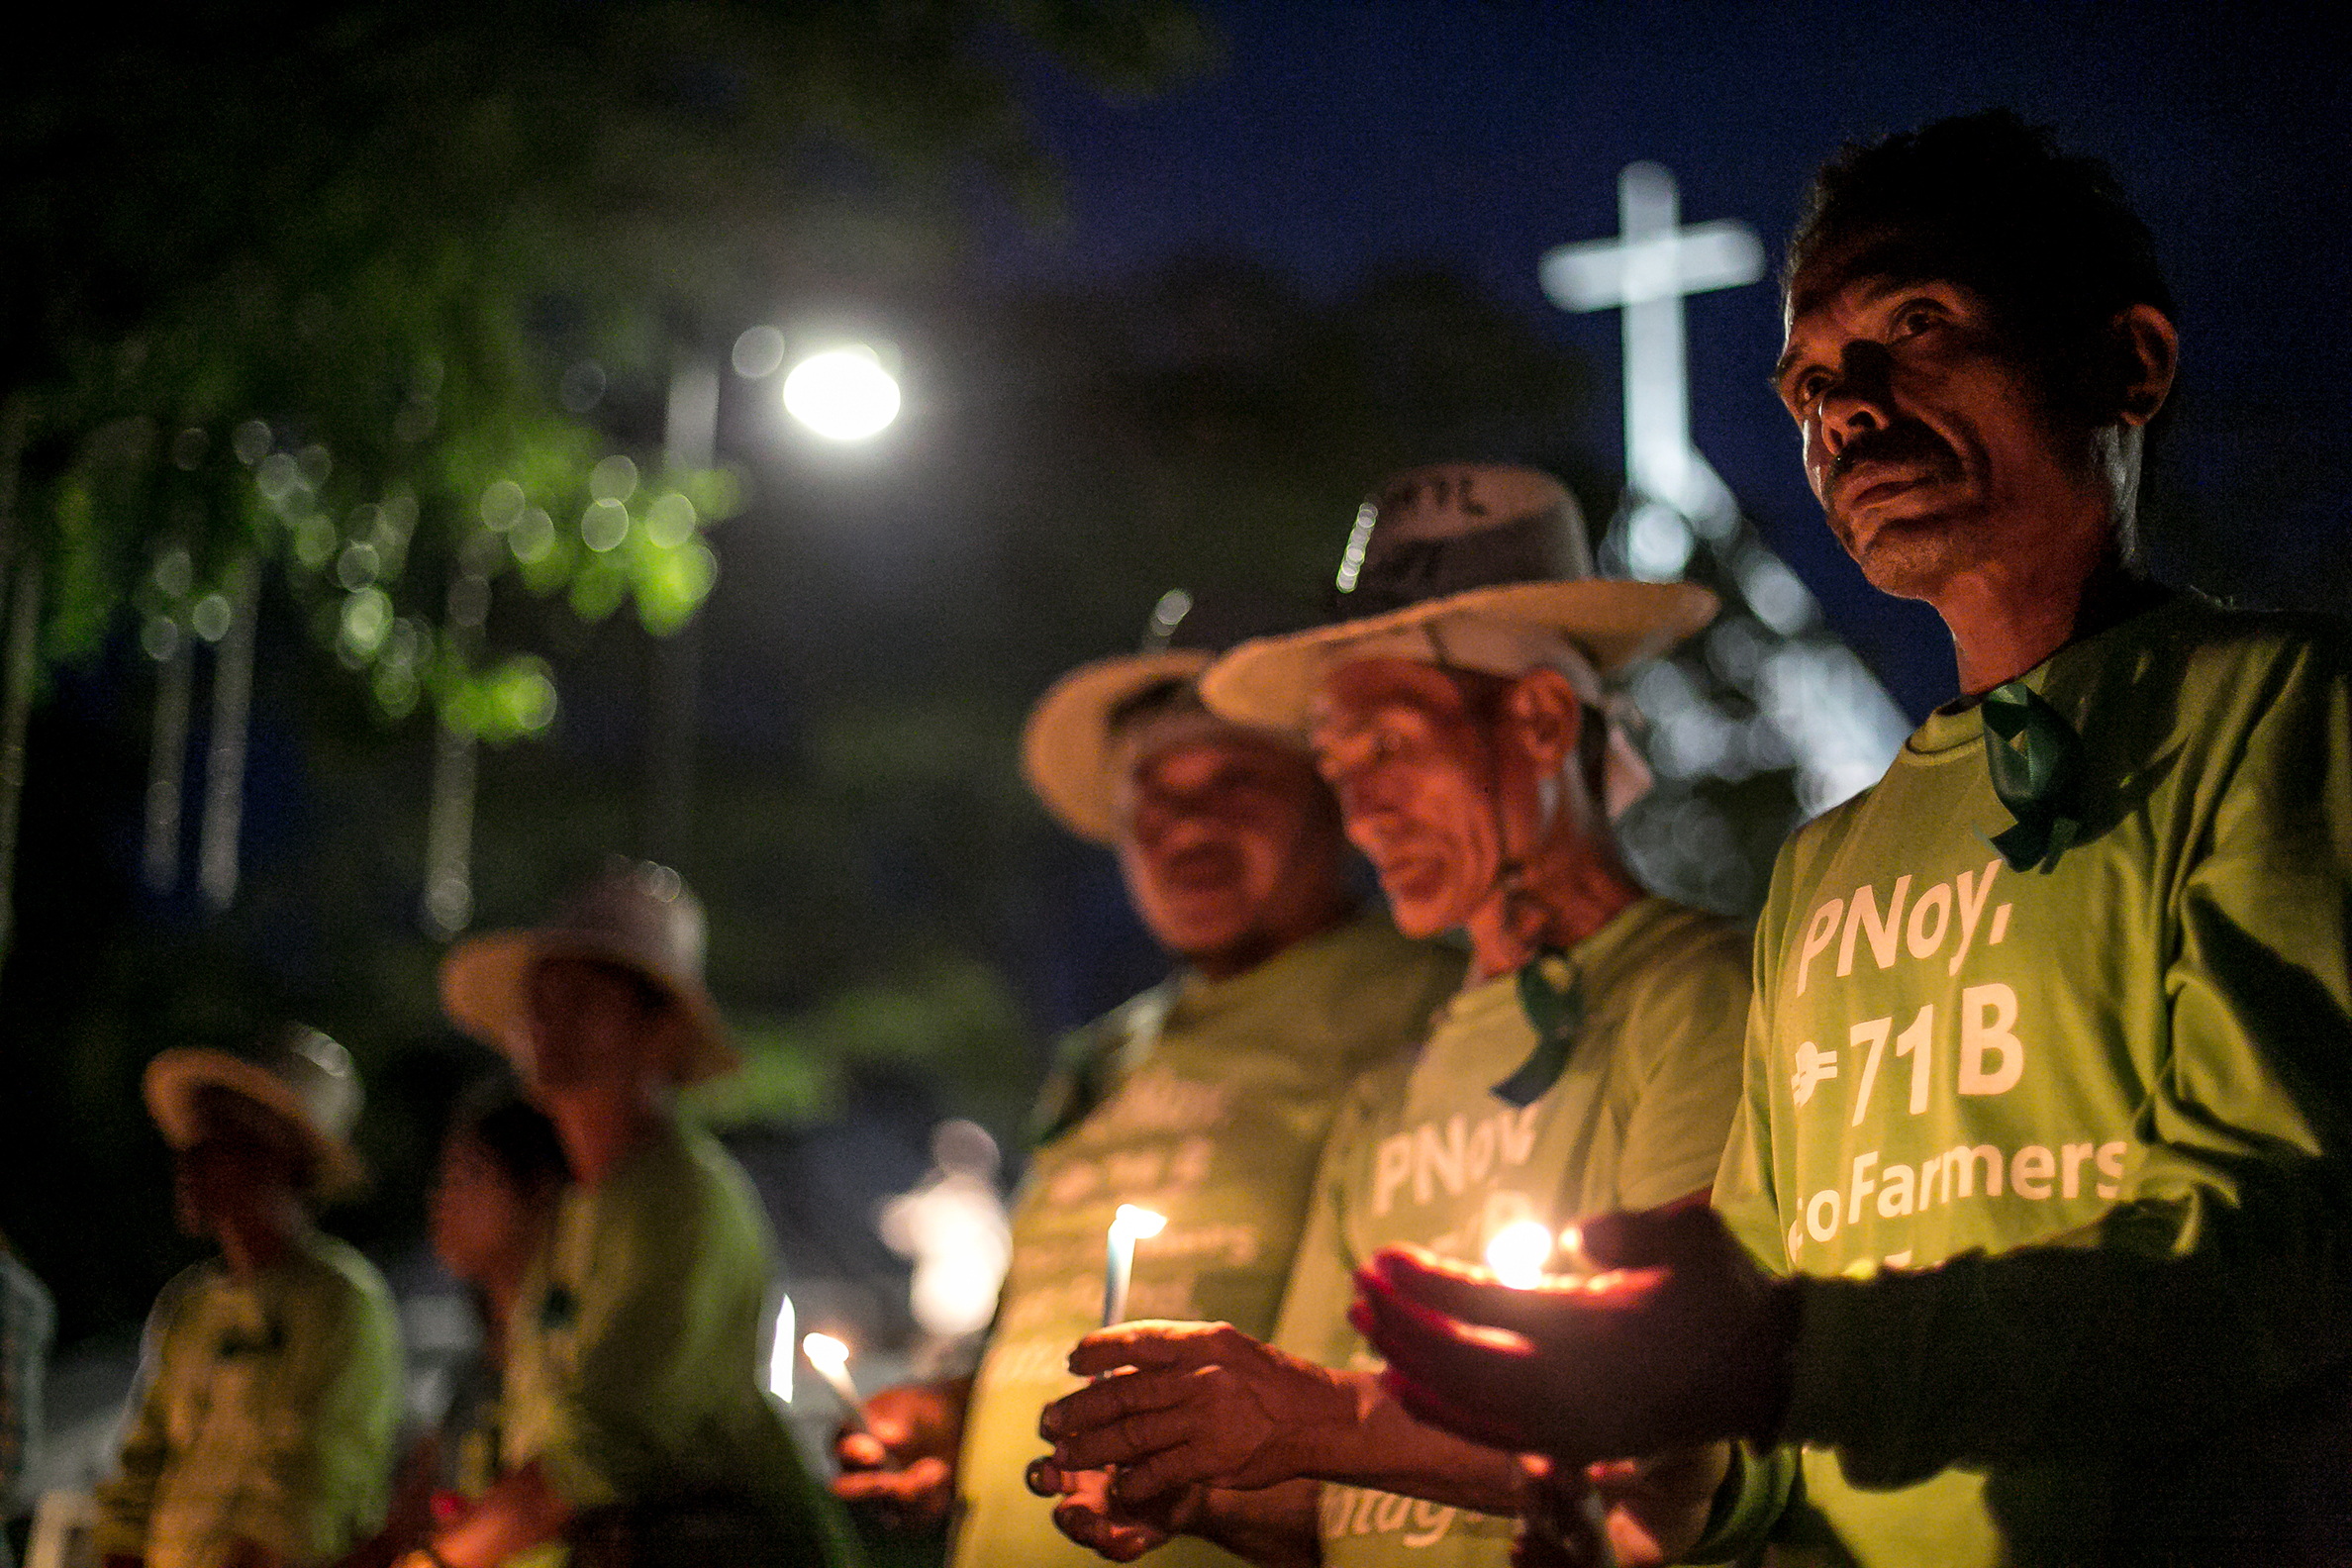 """QUEZON CITY, PHILIPPINES — The coconut farmers of the  KM71 Martsa ng Magniniyog held a prayer vigil at the Ateneo de Manila University on 20 November 2014. They marched from Davao City to Malacañang to speak with former President Benigno """"Noynoy"""" Aquino III about the return of the Coco Levy Trust Fund."""